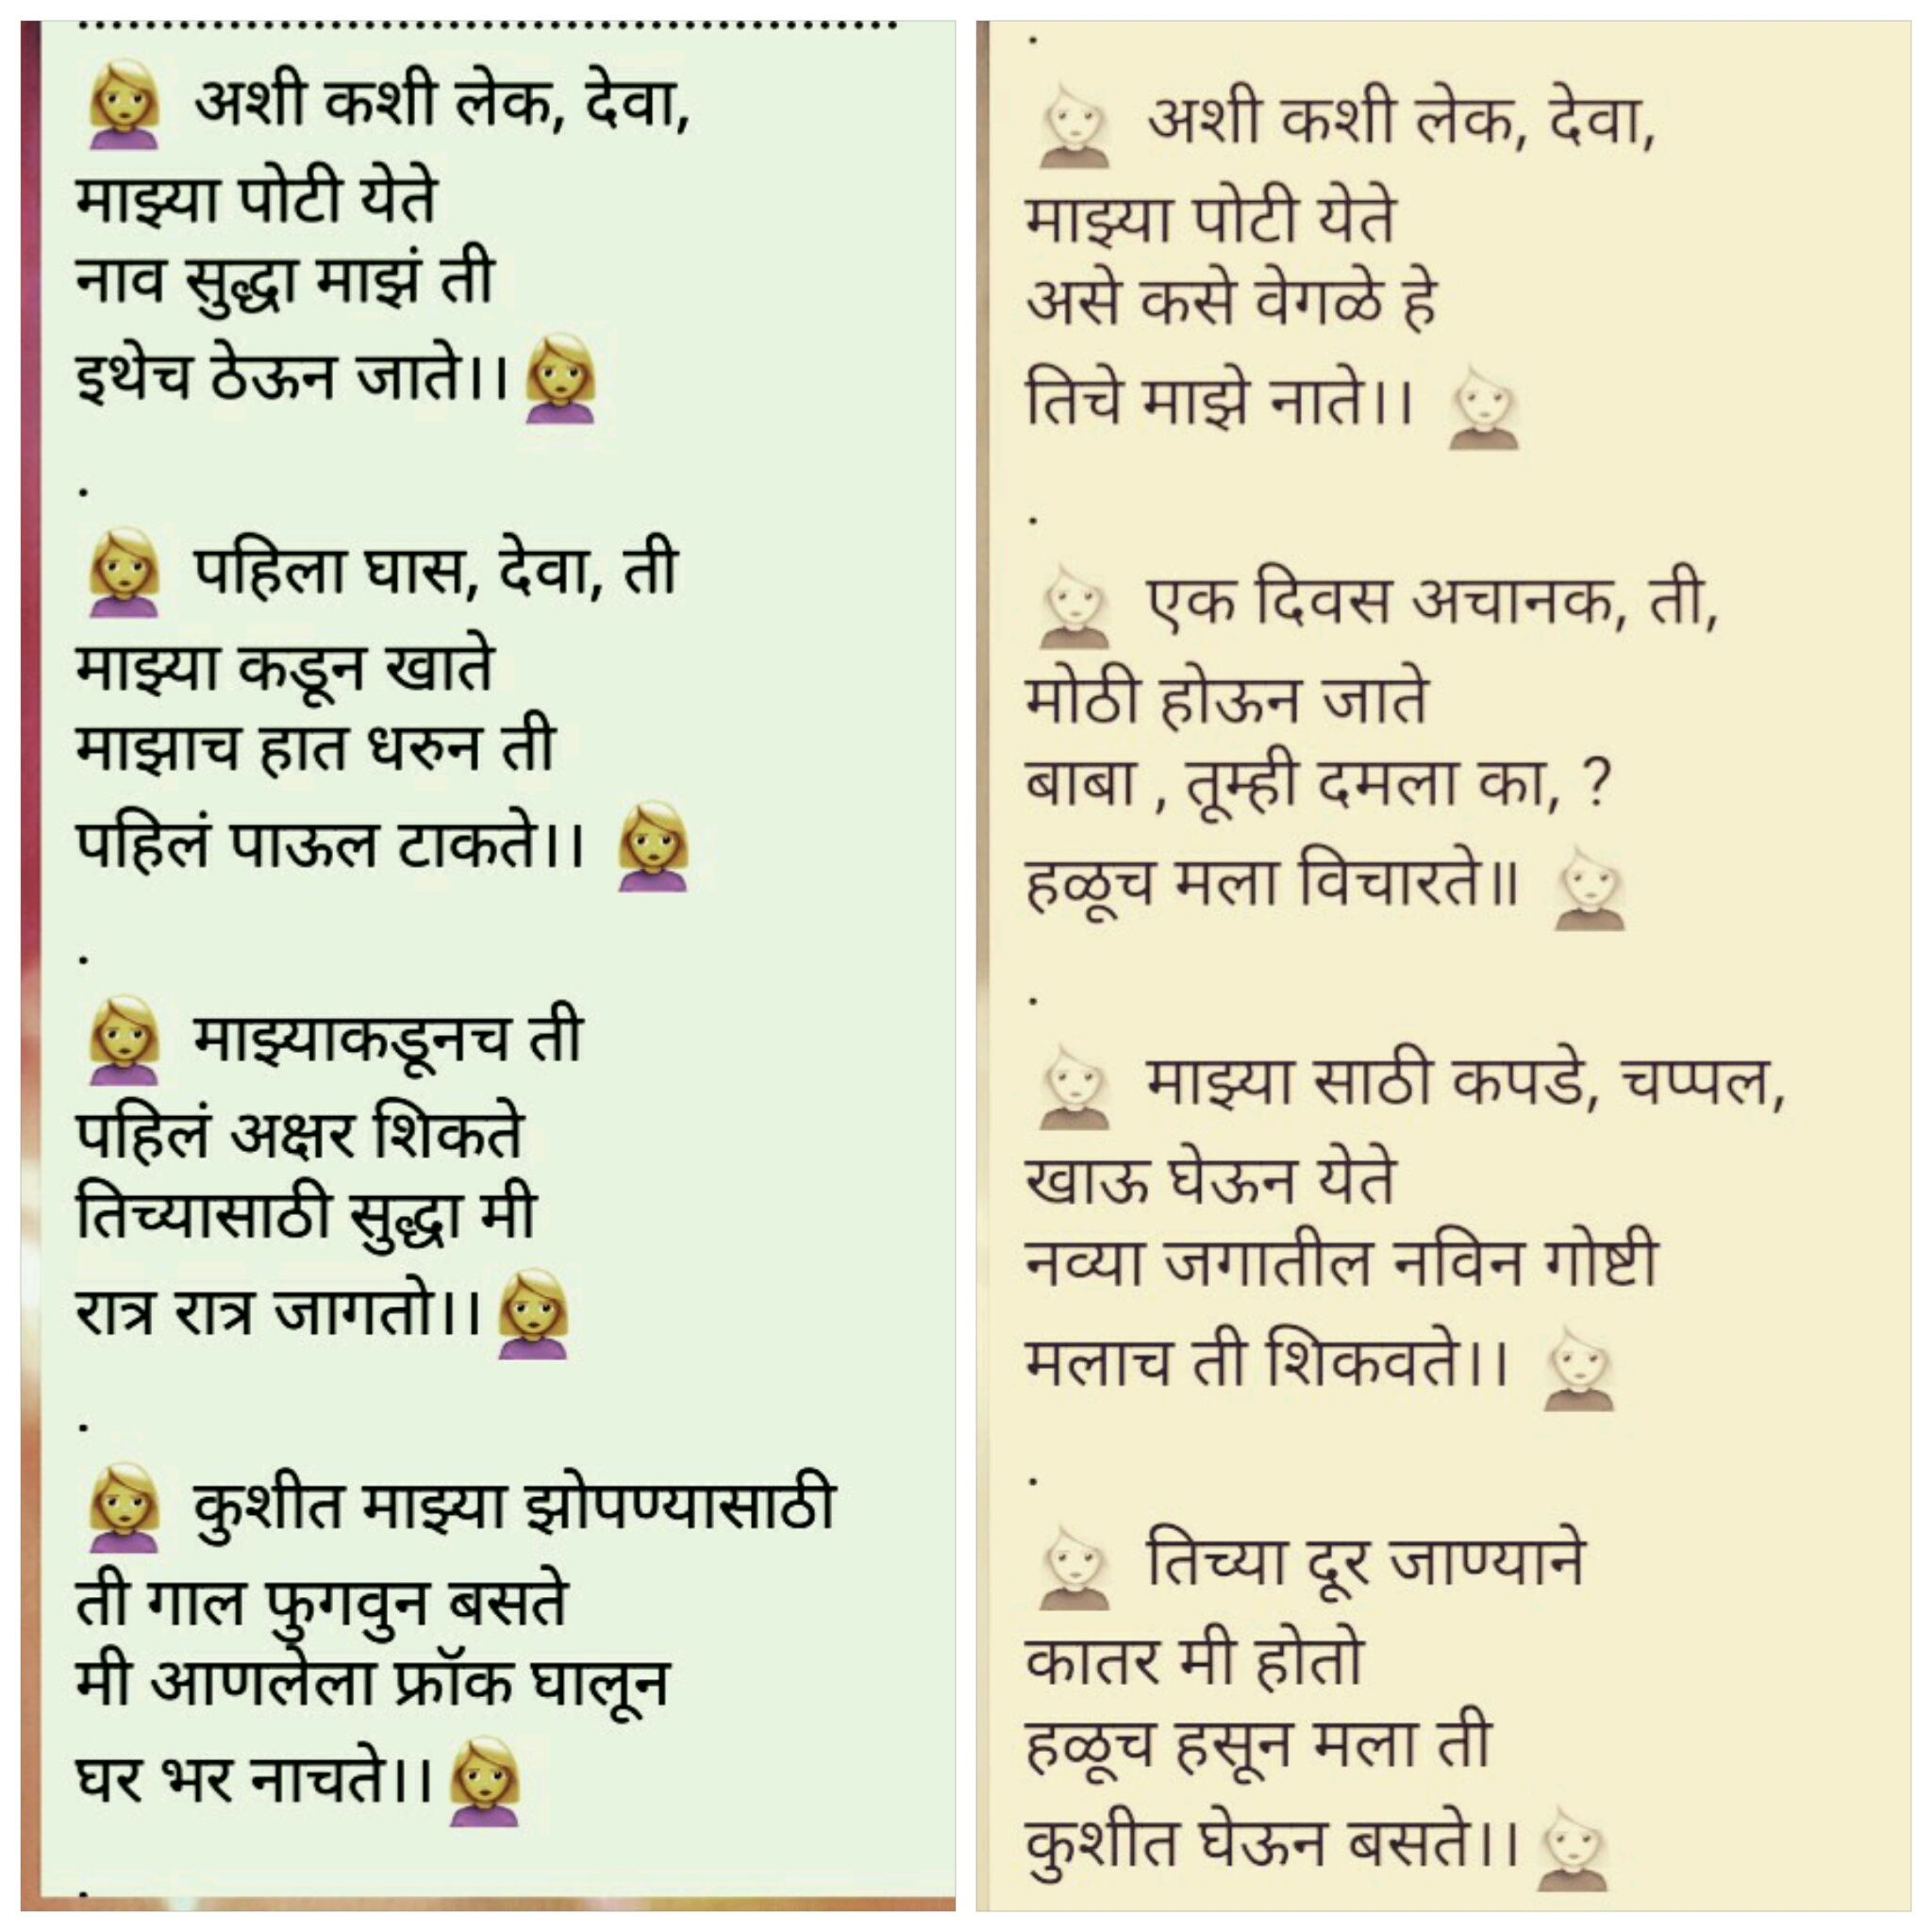 A beautiful marathi poem, a father on having a daughter